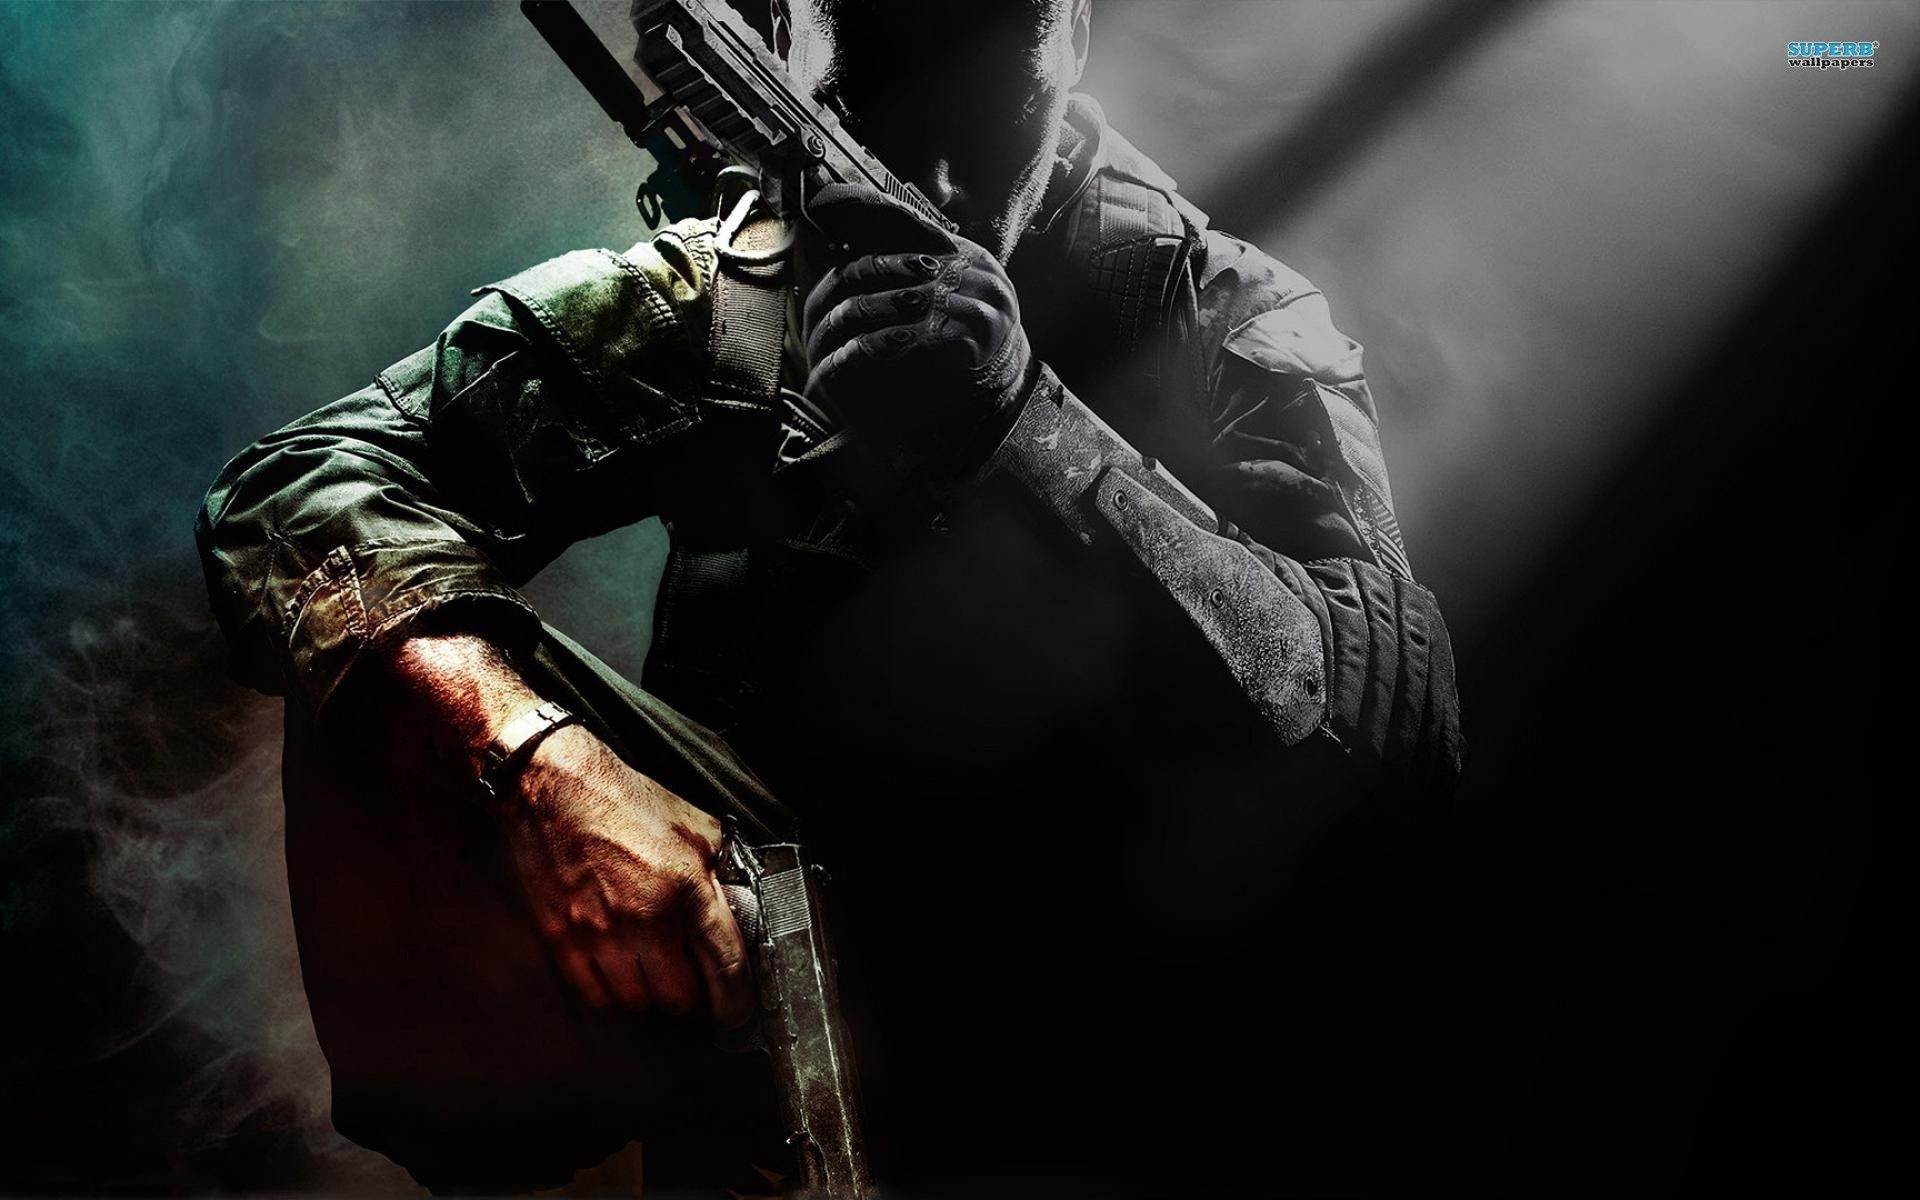 Call Of Duty Bo2 Wallpaper: Cod Bo2 Zombies Wallpaper (83+ Images